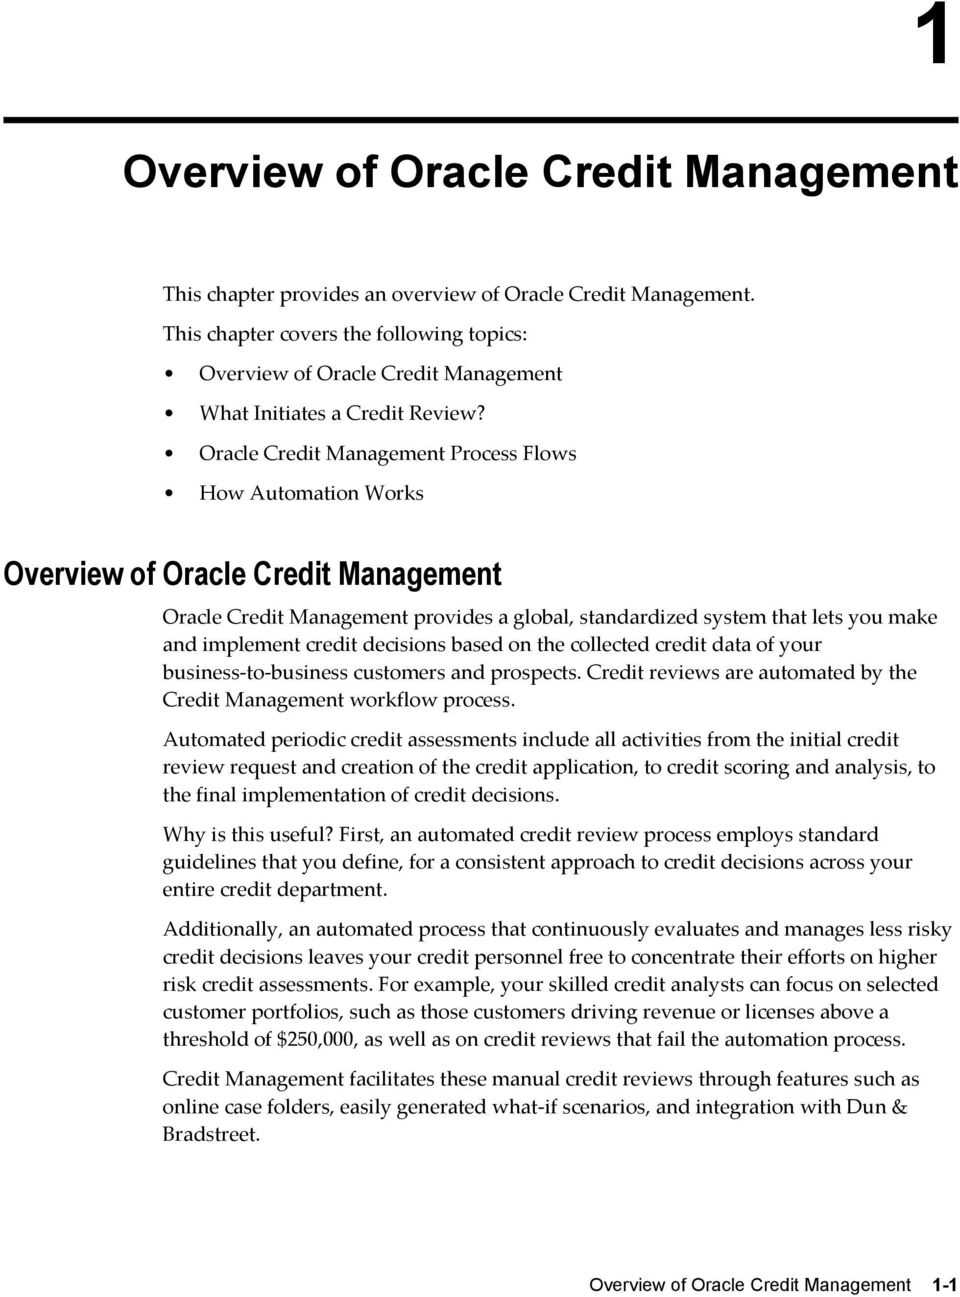 Oracle Credit Management Process Flows How Automation Works Overview of Oracle Credit Management Oracle Credit Management provides a global, standardized system that lets you make and implement